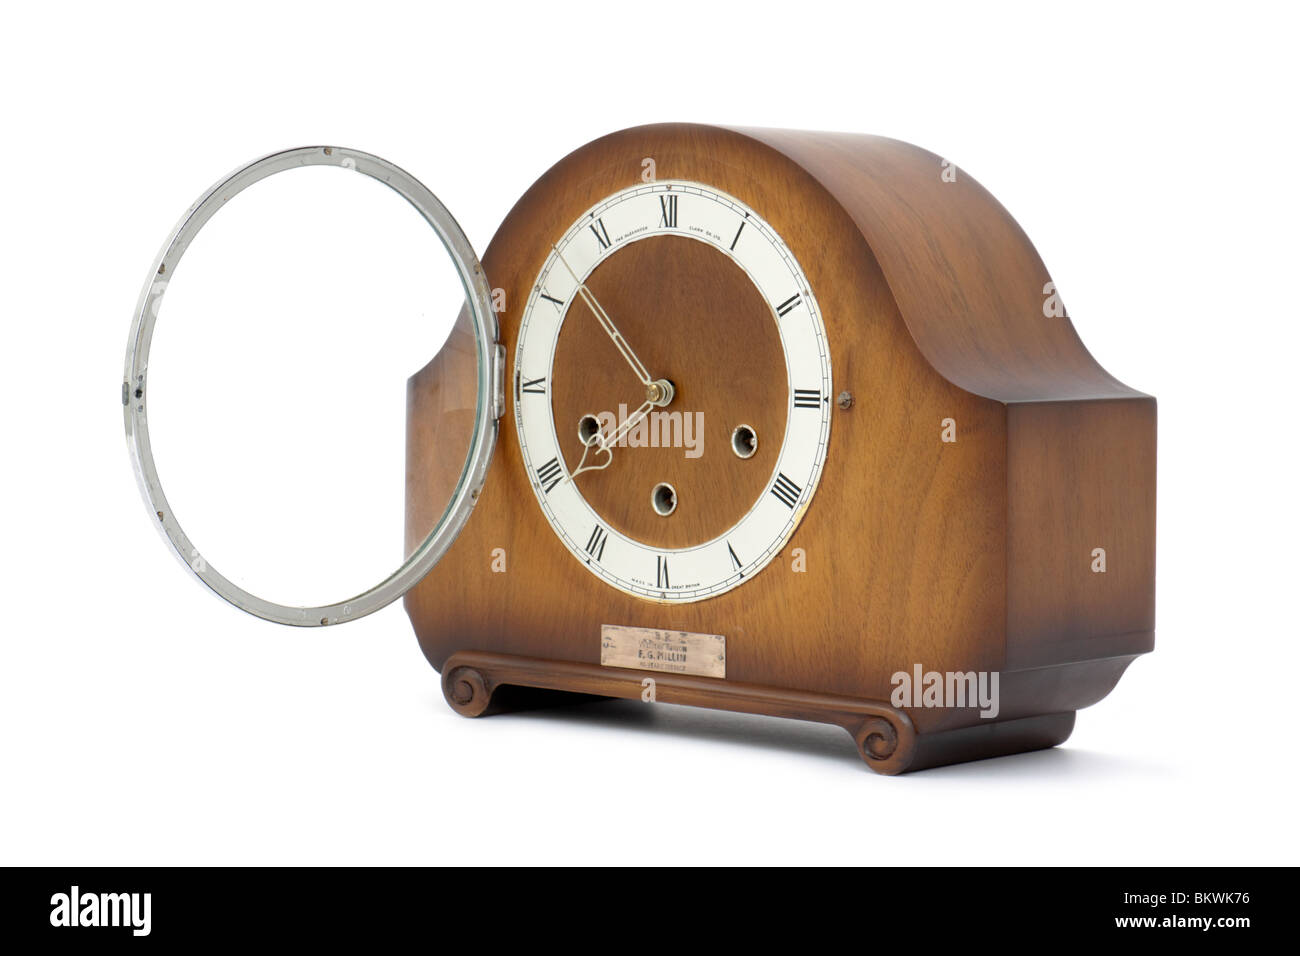 Vintage 1950's Smiths Westminster Chime 8-day wooden mantel clock issued by British Rail Western Region - Stock Image